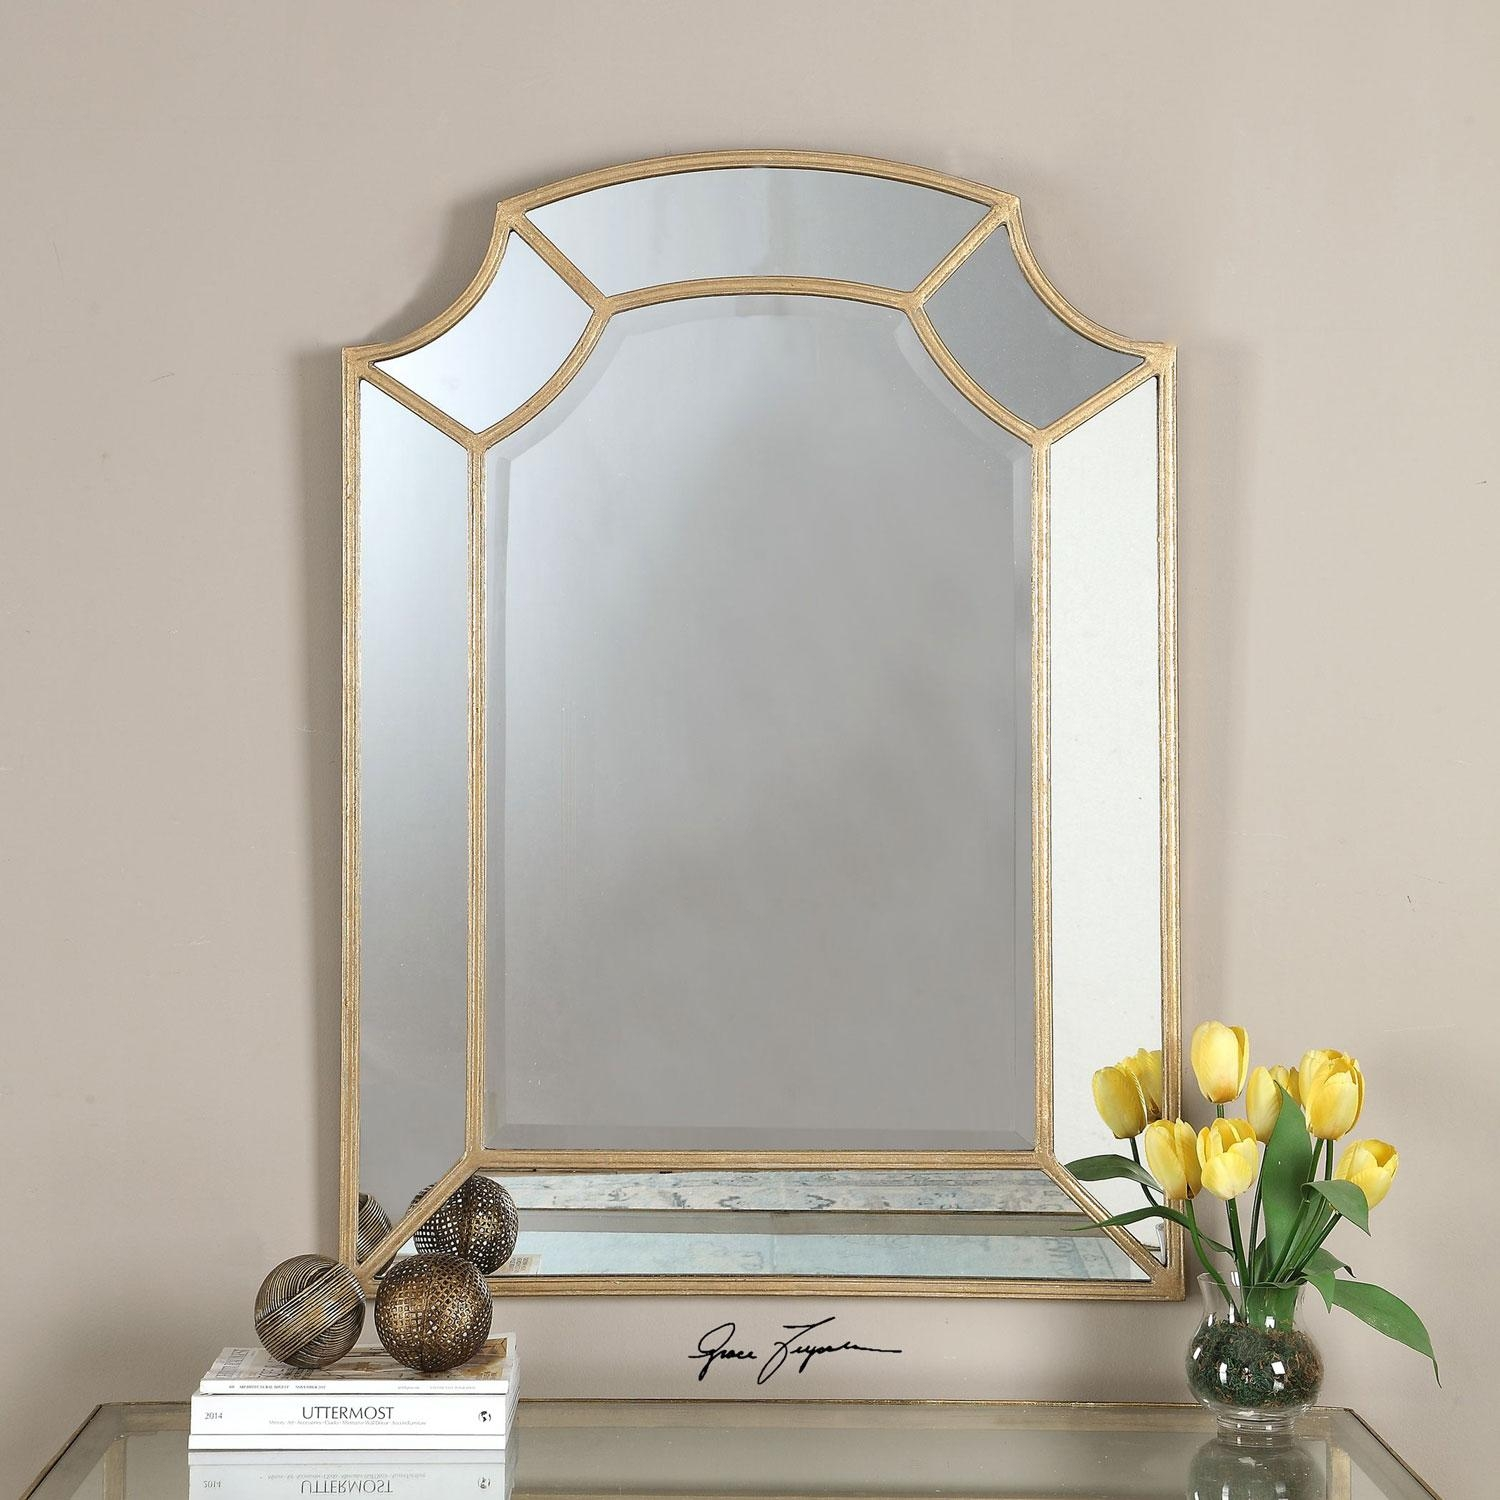 Francoli Gold Arch Mirror Uttermost Wall Mirror Mirrors Home Decor For Gold Arch Mirror (Image 3 of 20)